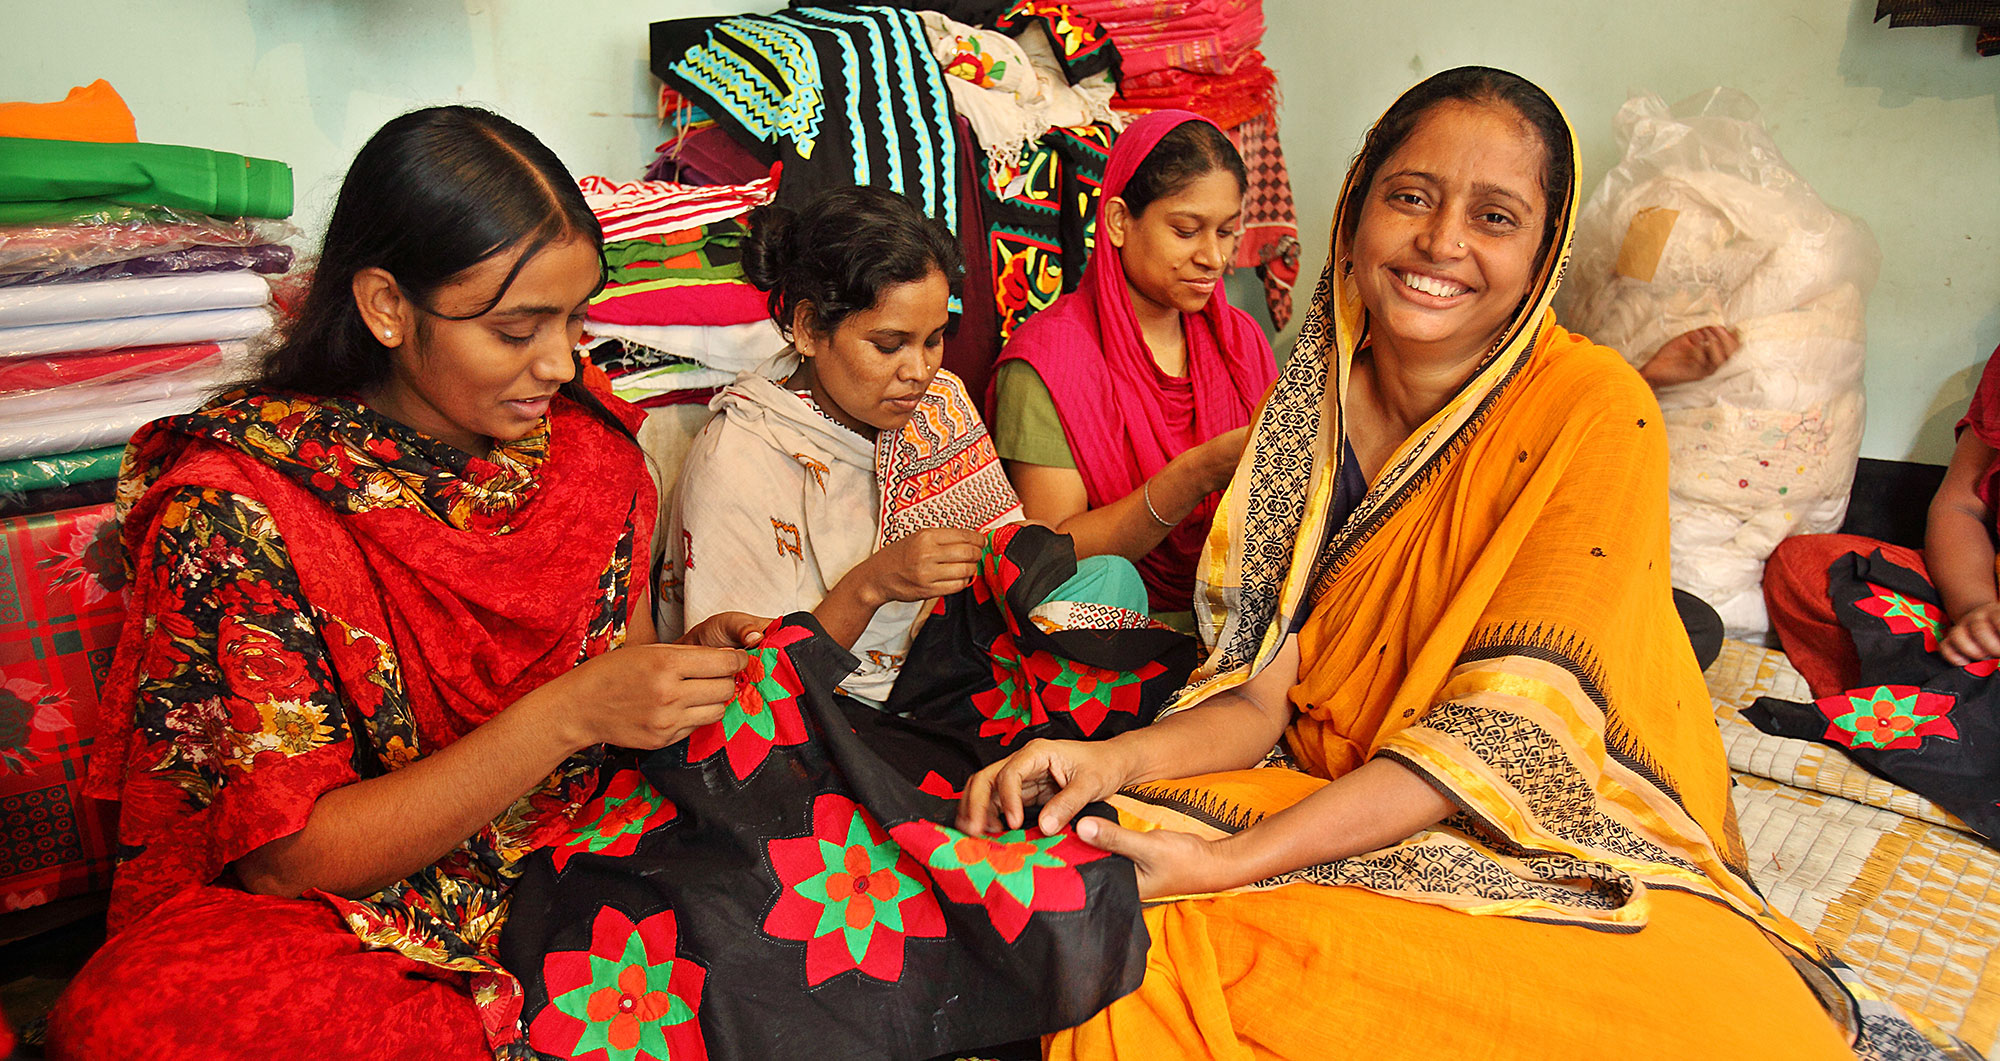 Women artisans in Bangladesh